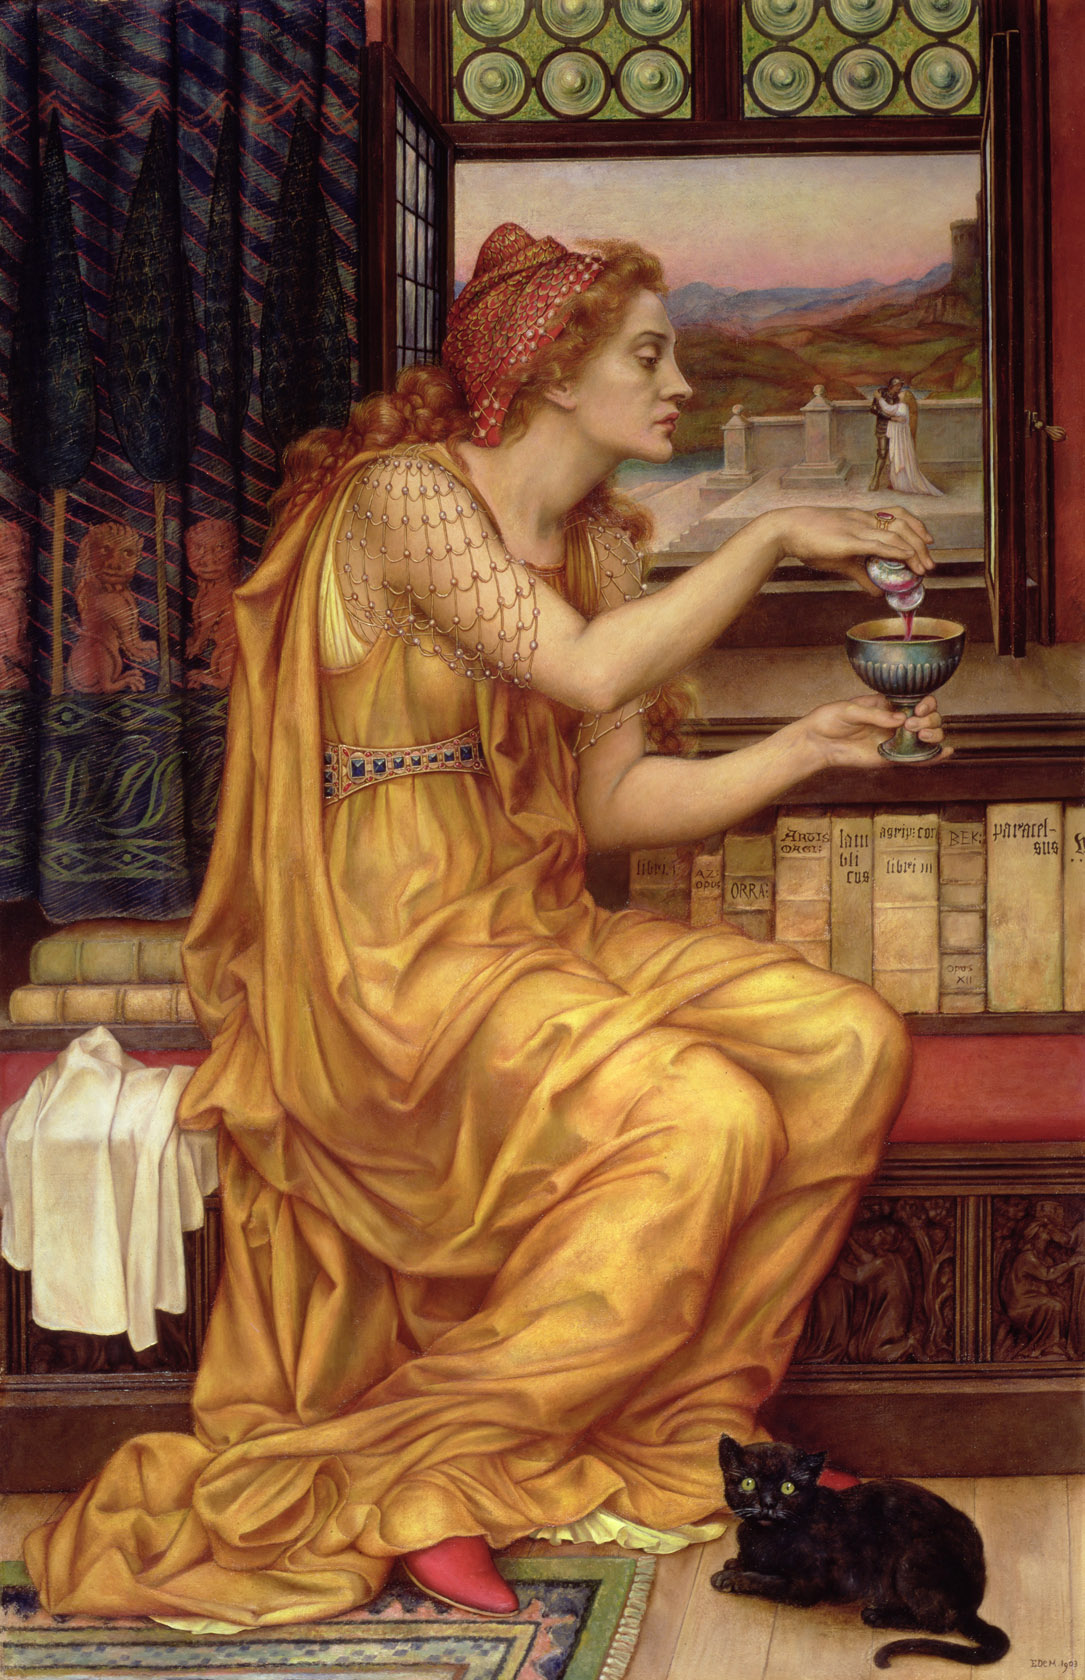 An image of 'The Love Potion' by Evelyn De Morgan, in which a woman mixes up a potion while a black cat looks on. Such potions are an intrinsic part of love magic.